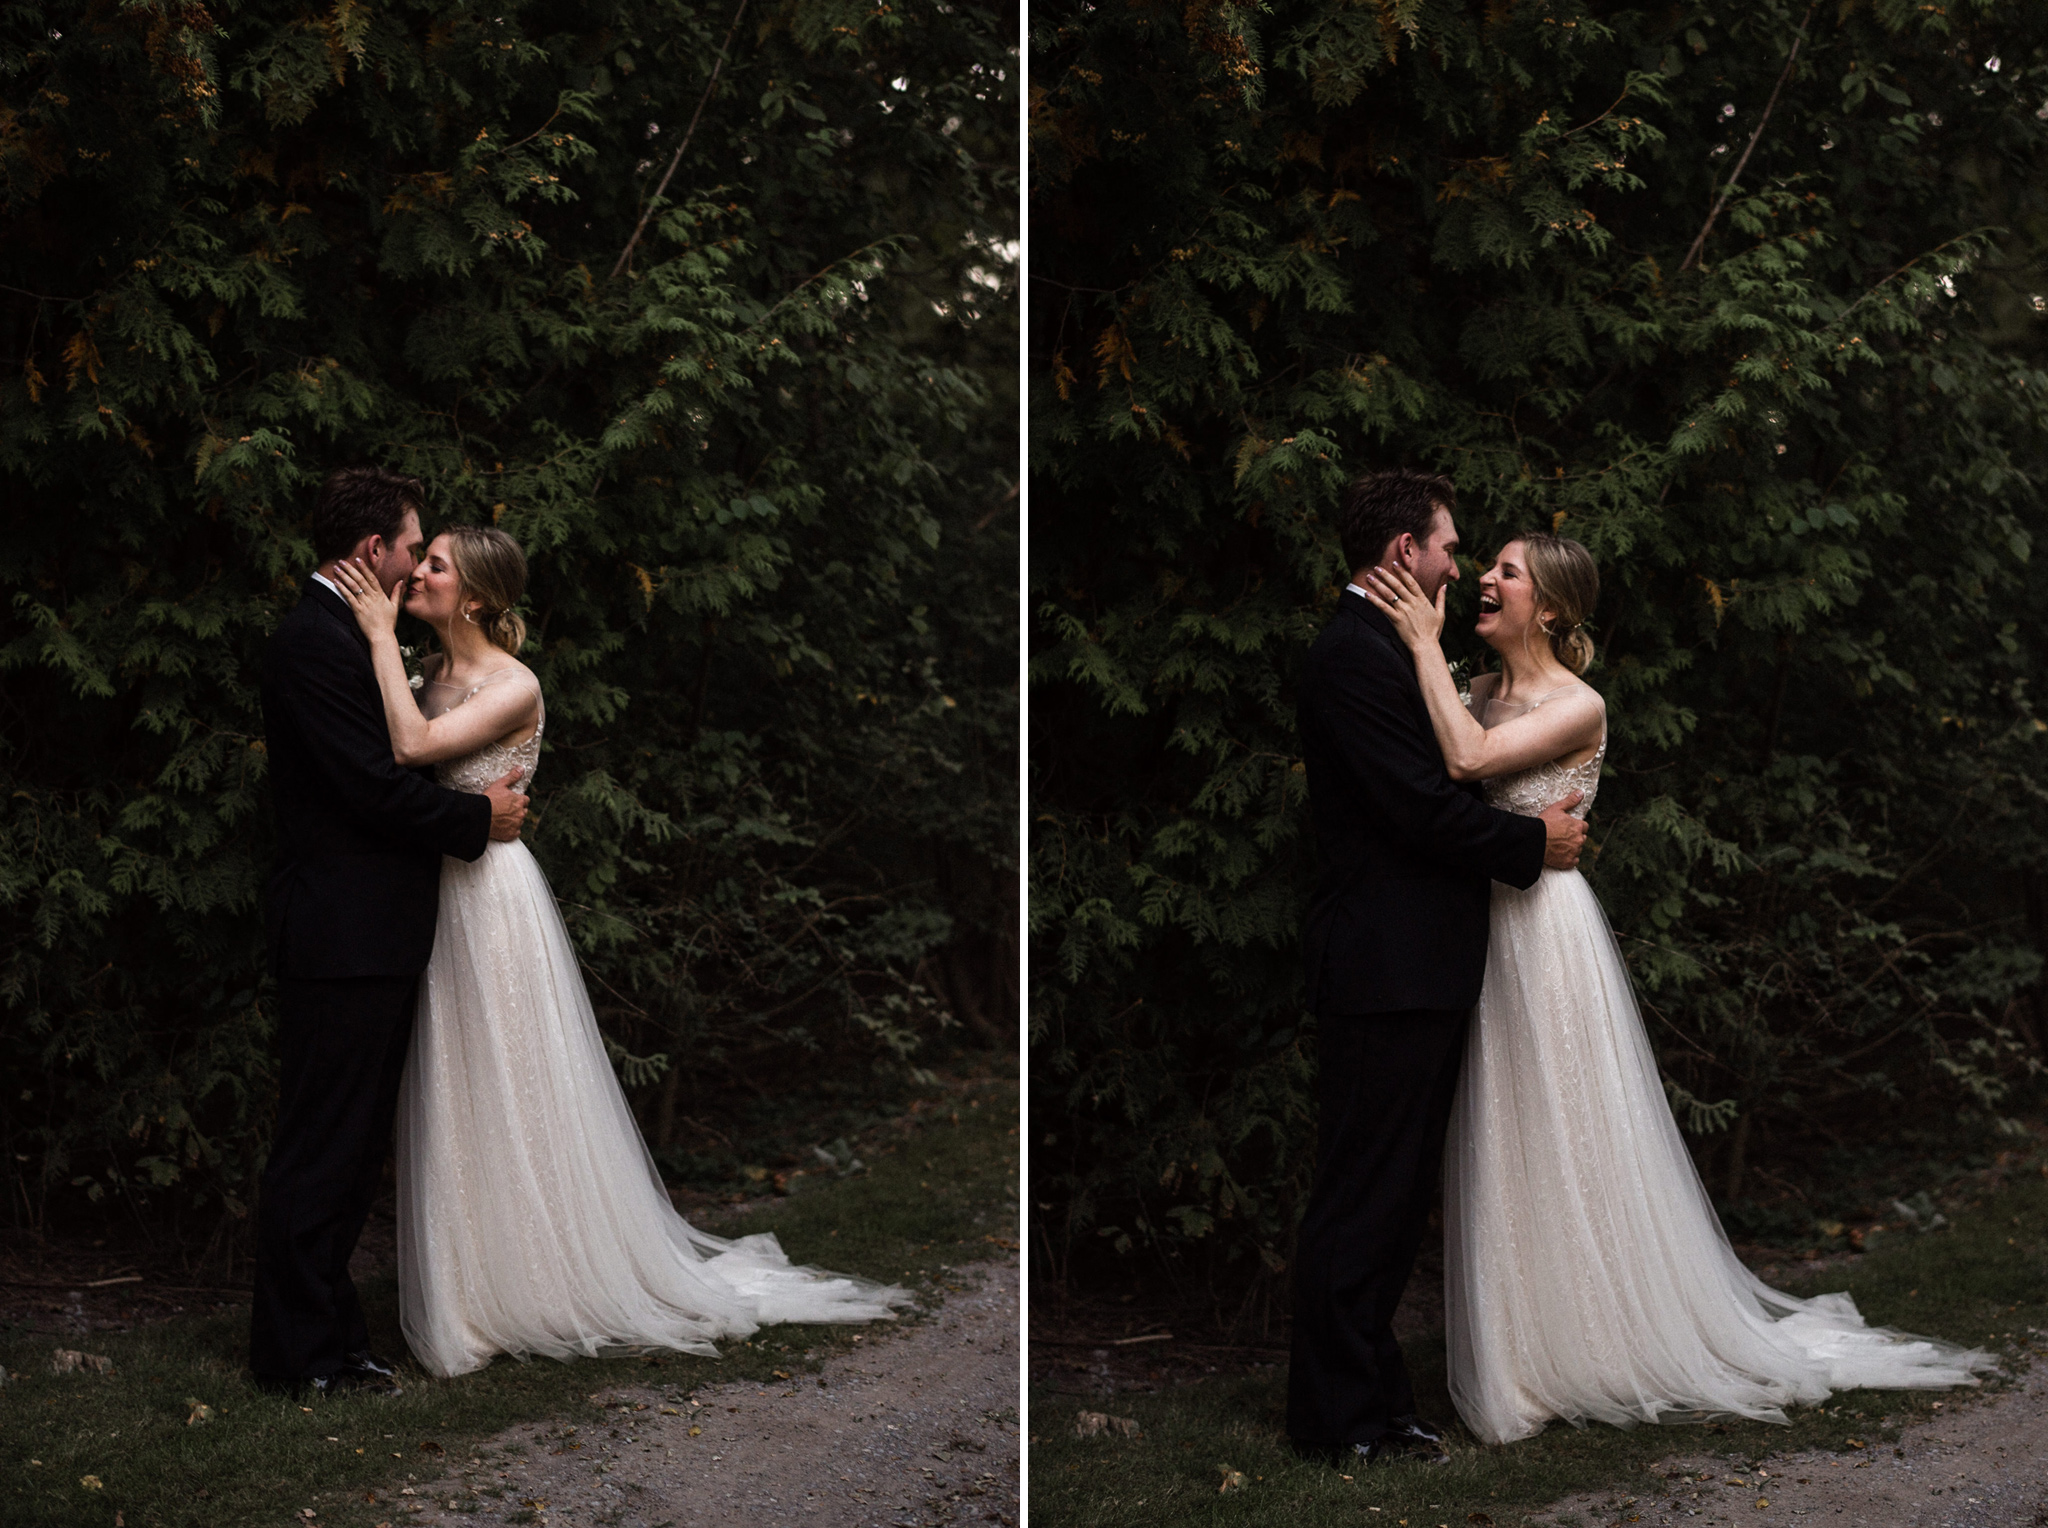 227-elegant-wedding-dress-couple-portraits-penryn-park-toronto-photographer.jpg